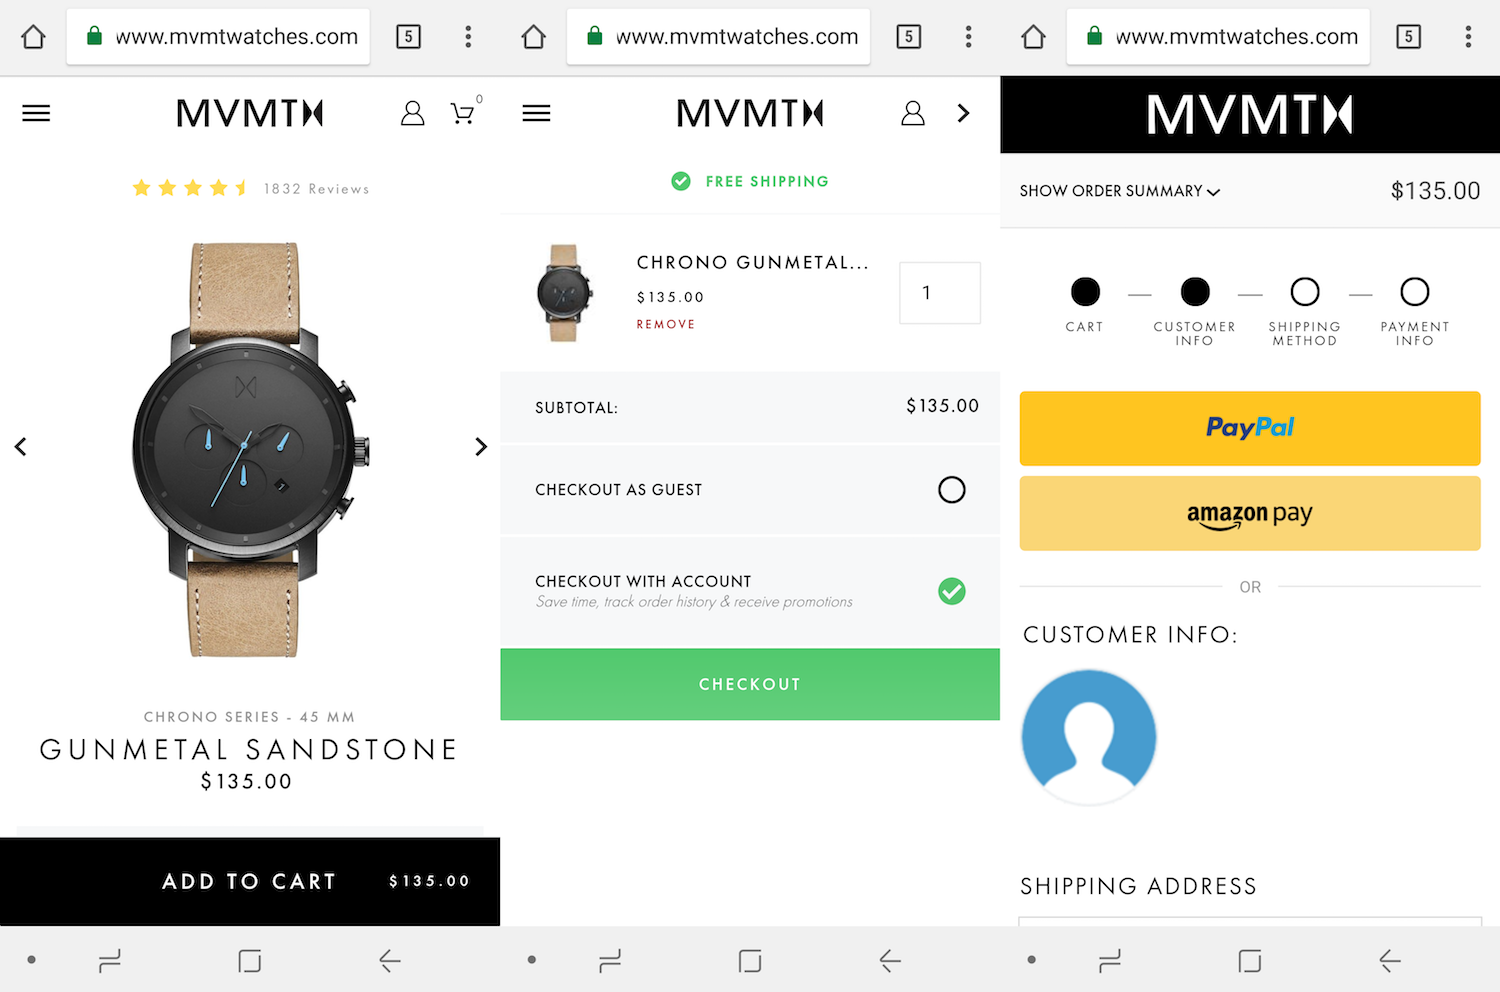 MVMT's mobile checkout optimizes the first online shopping trend